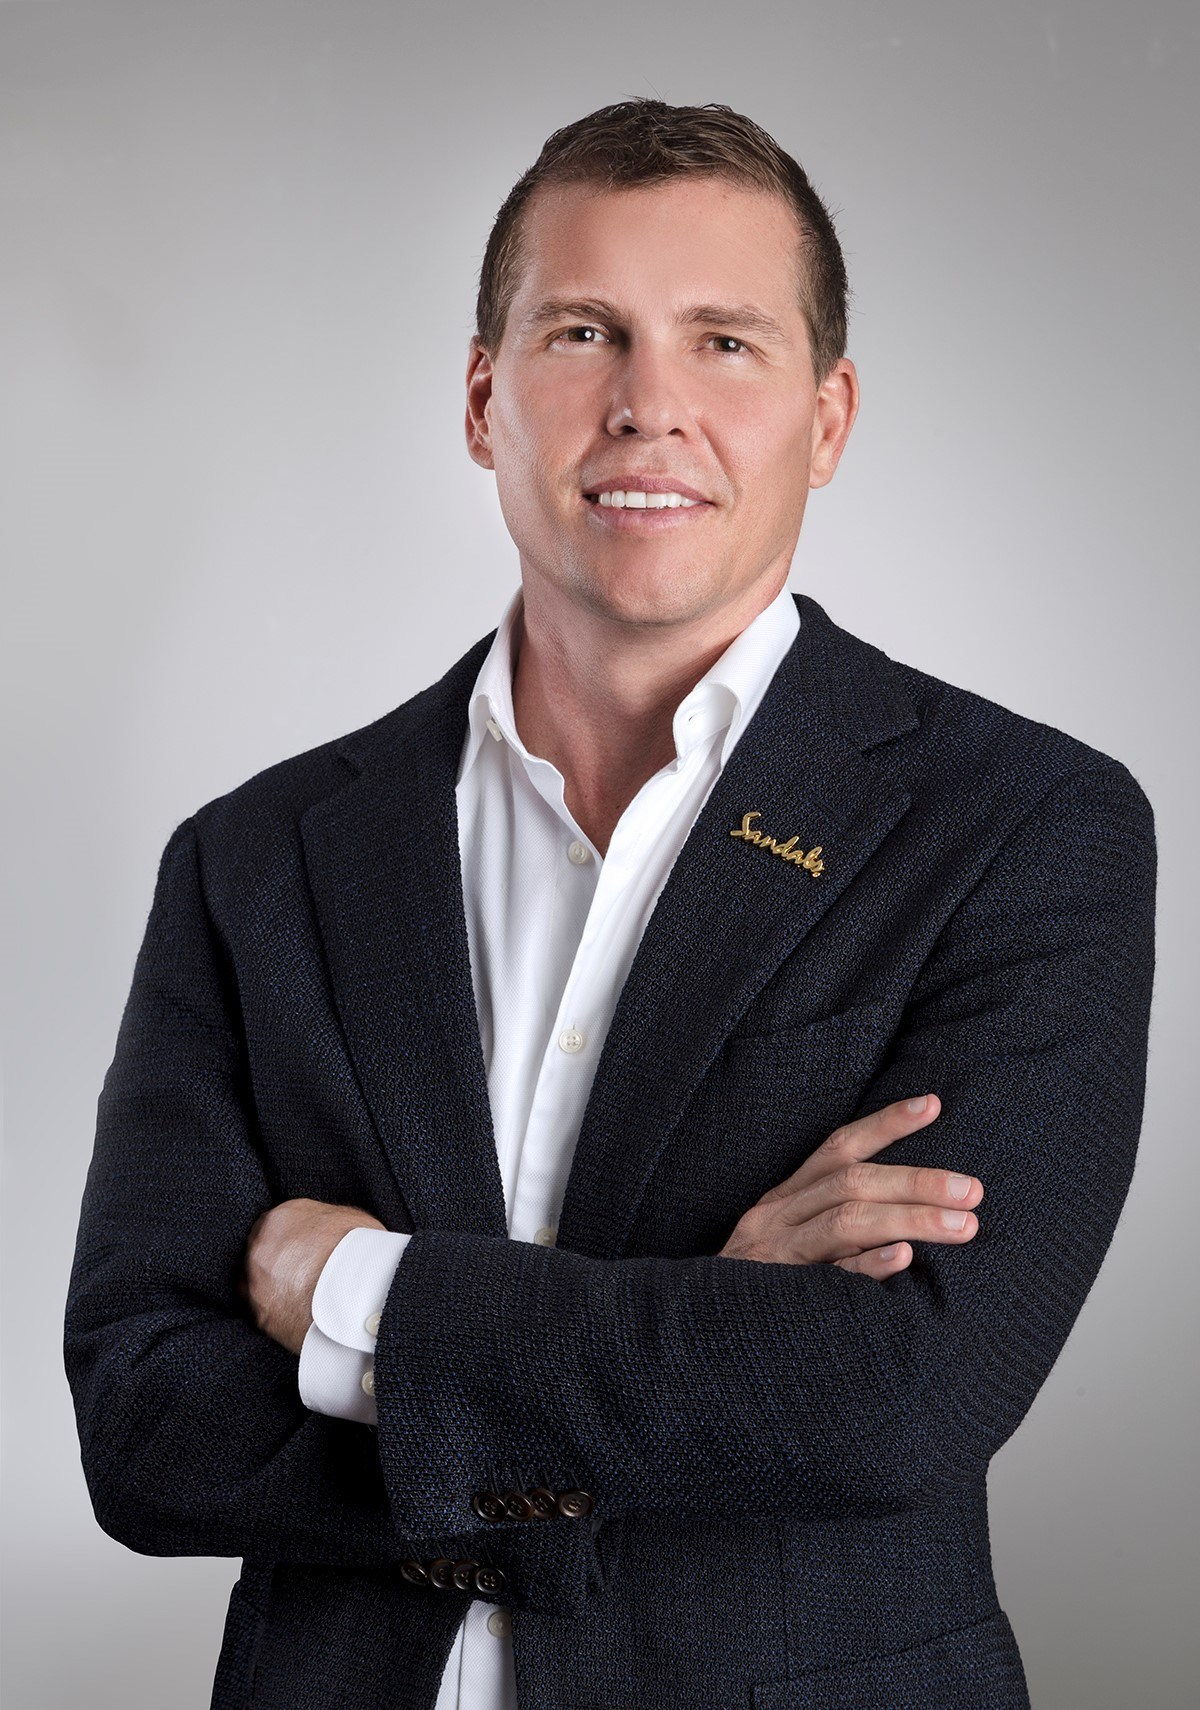 Sandals® Resorts Executive Chairman To Join World Travel & Tourism Council Executive Committee